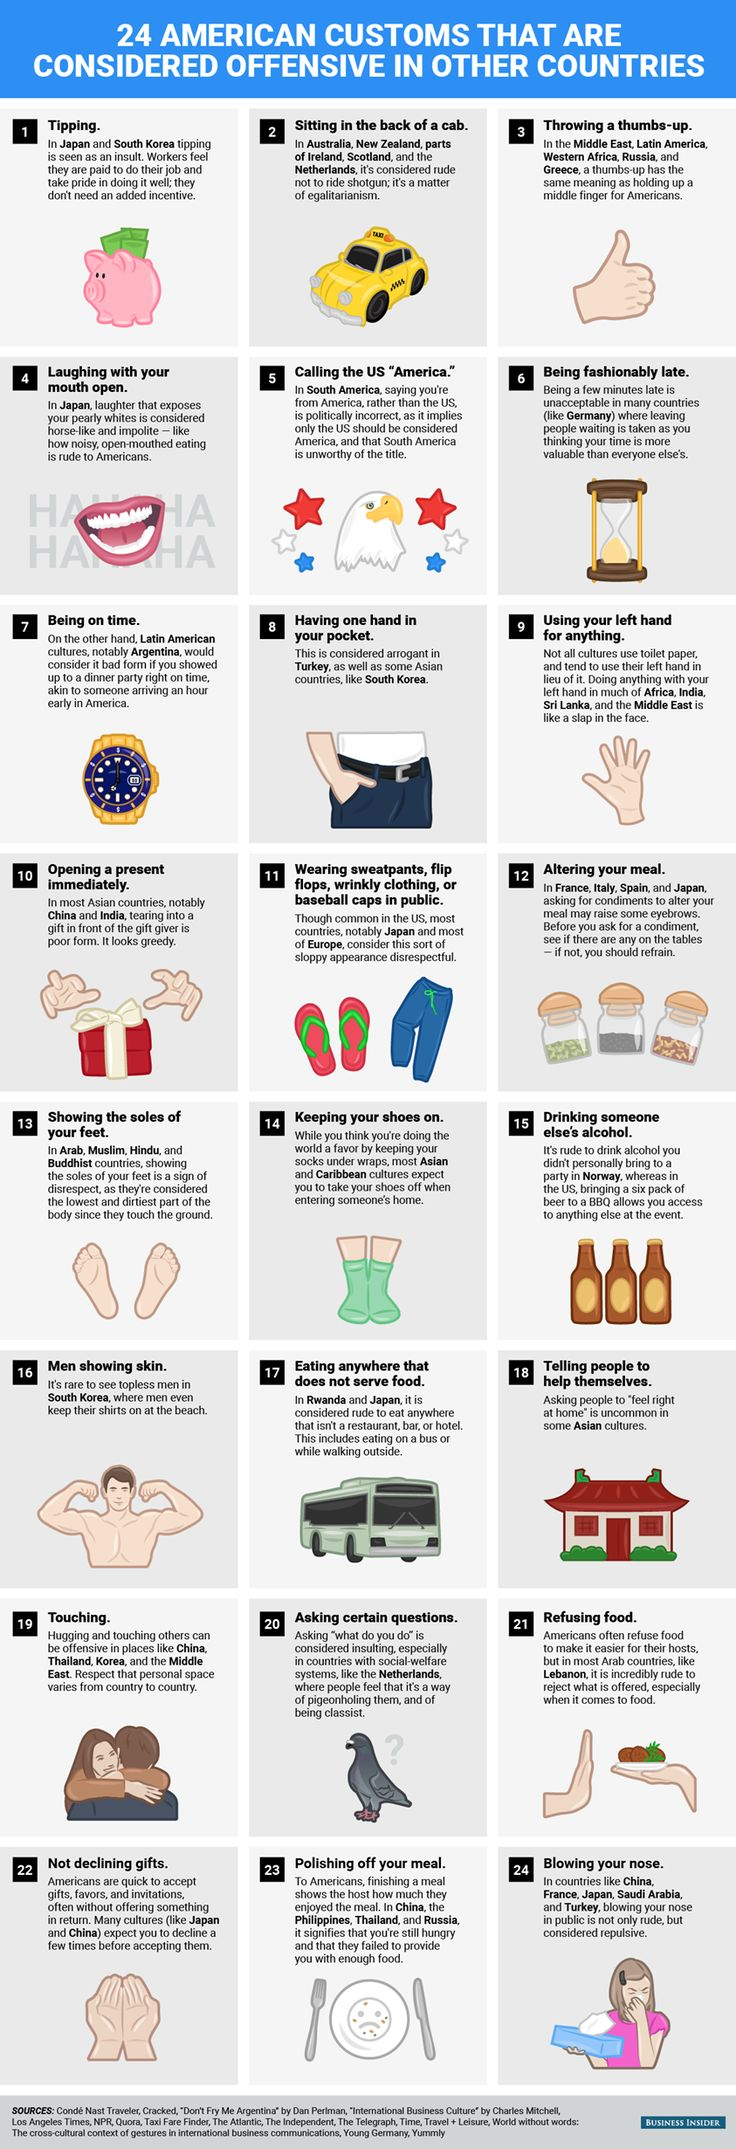 86 best travel etiquette customs tipping images on pinterest 25 common offensive american customs in other countries m4hsunfo